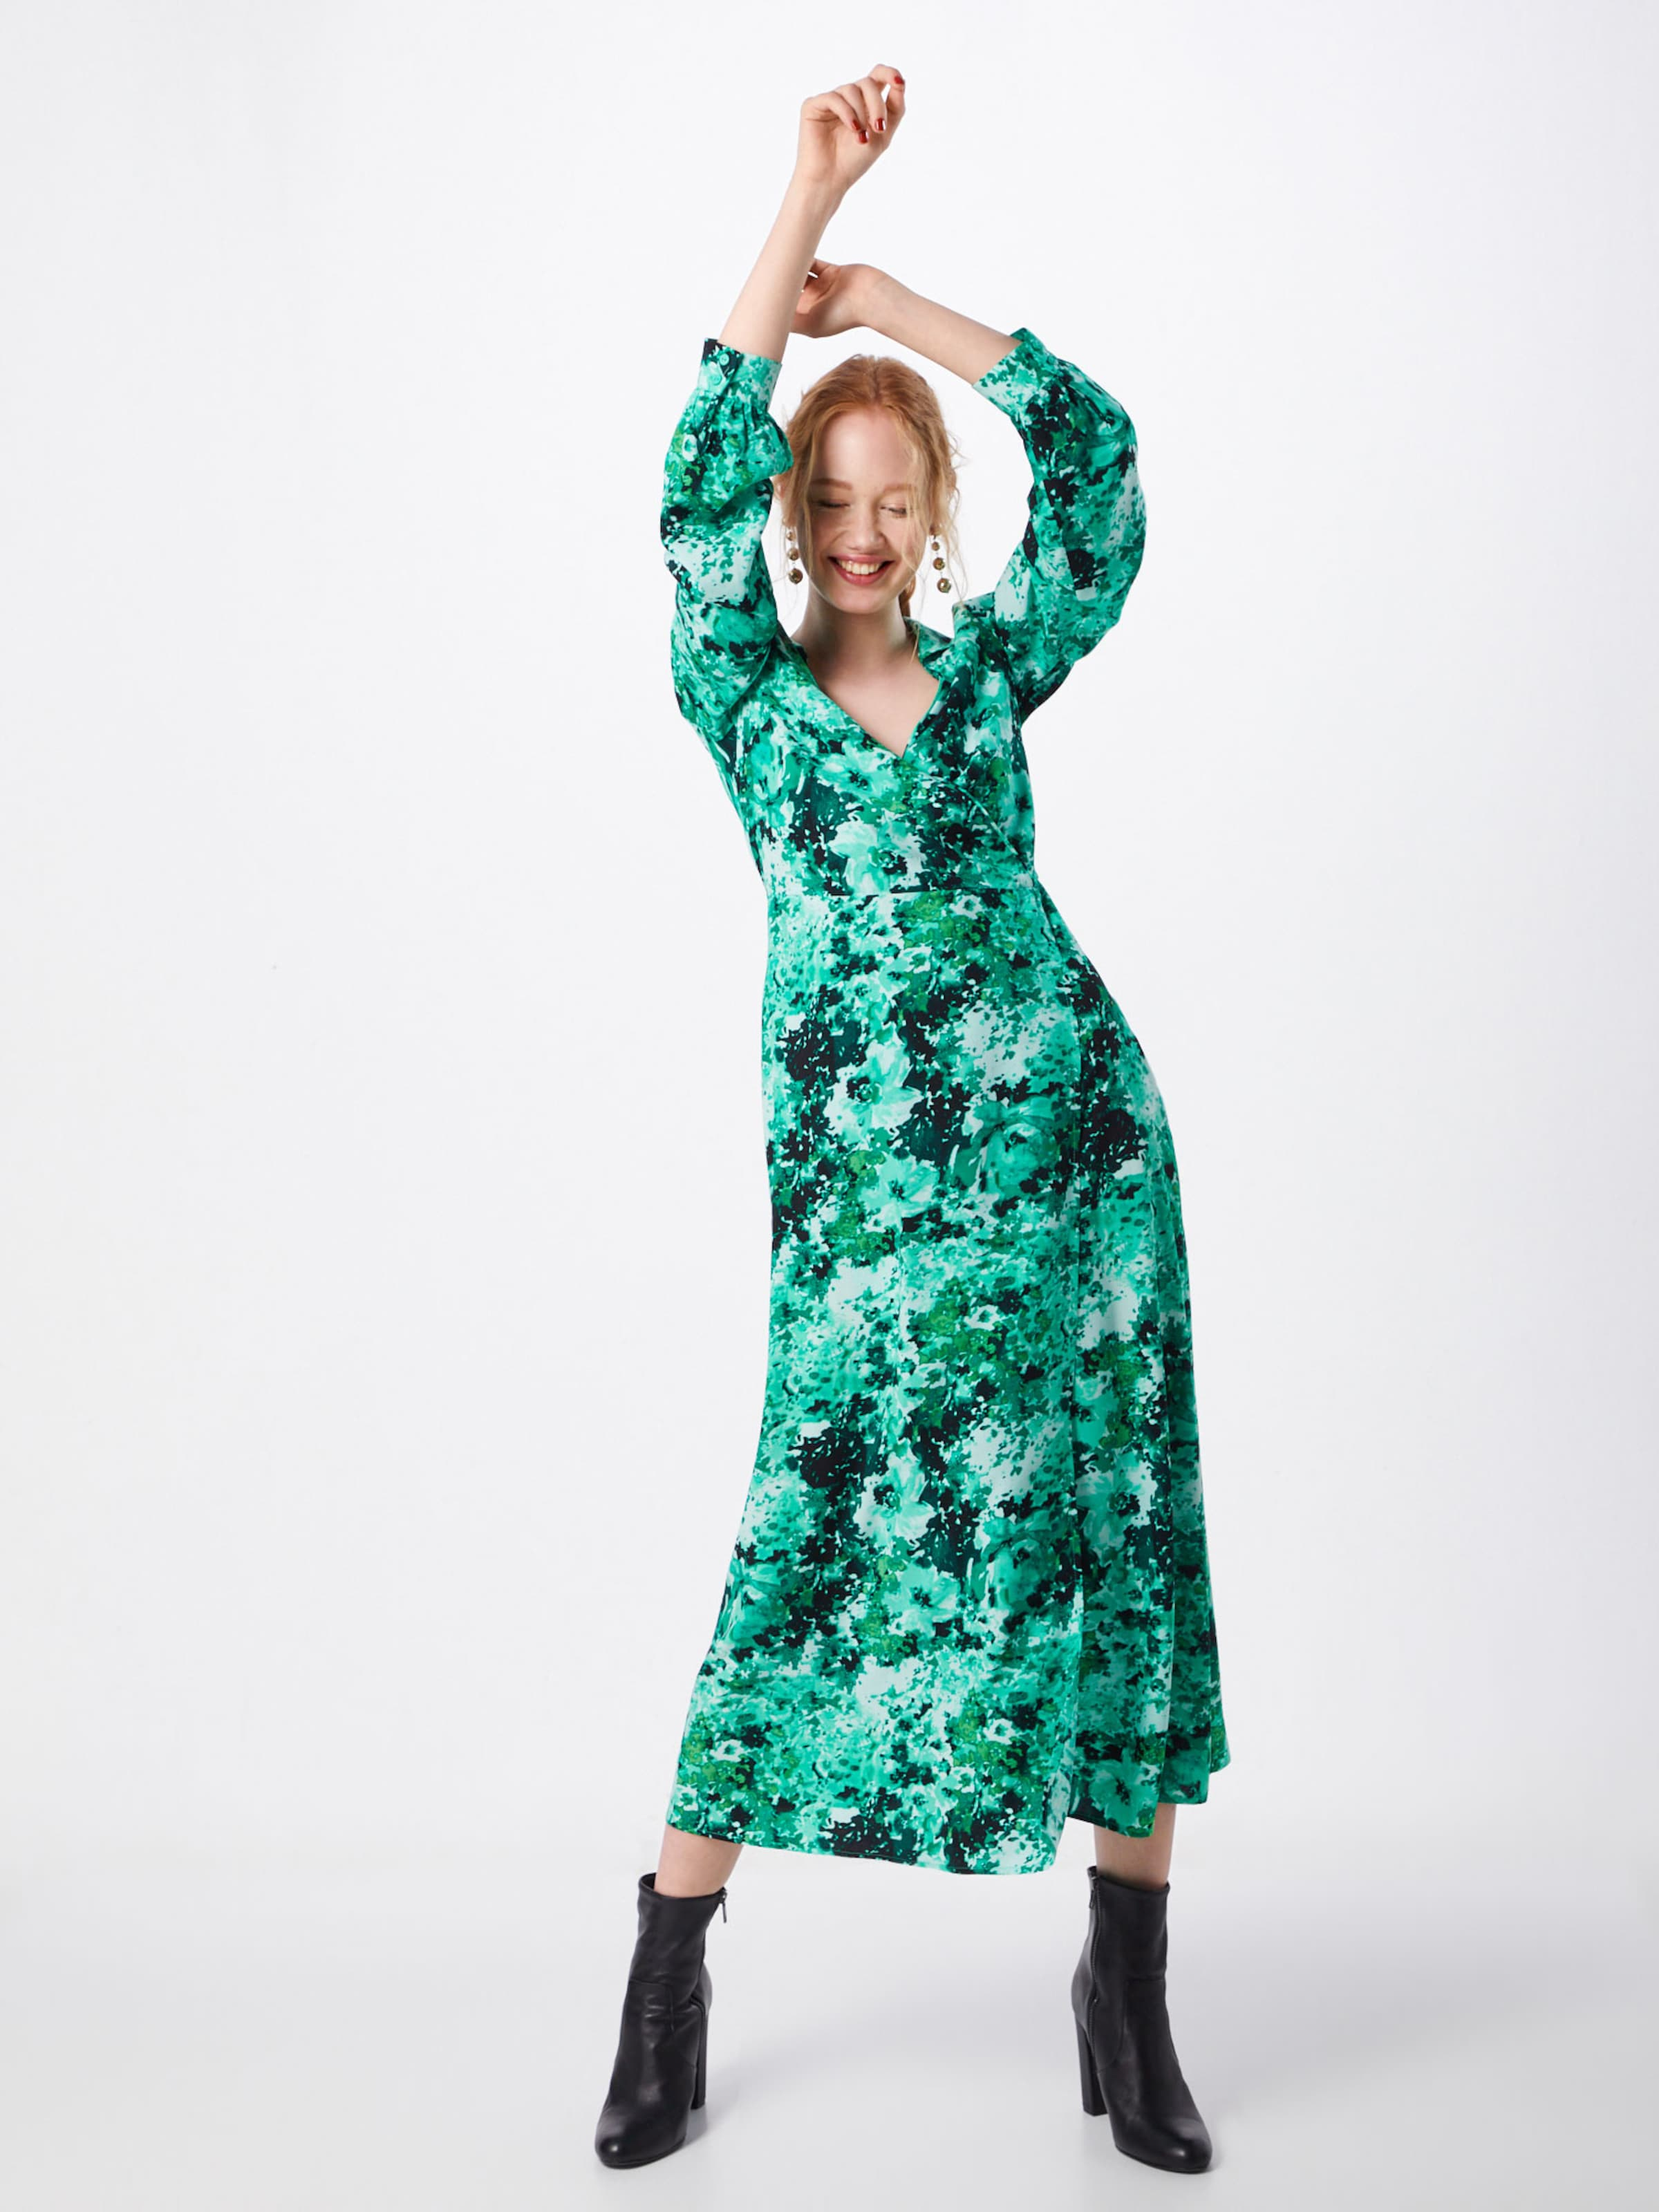 'objsana Dress 104' Object L Vert D'été s En Robe T1l3KJcF